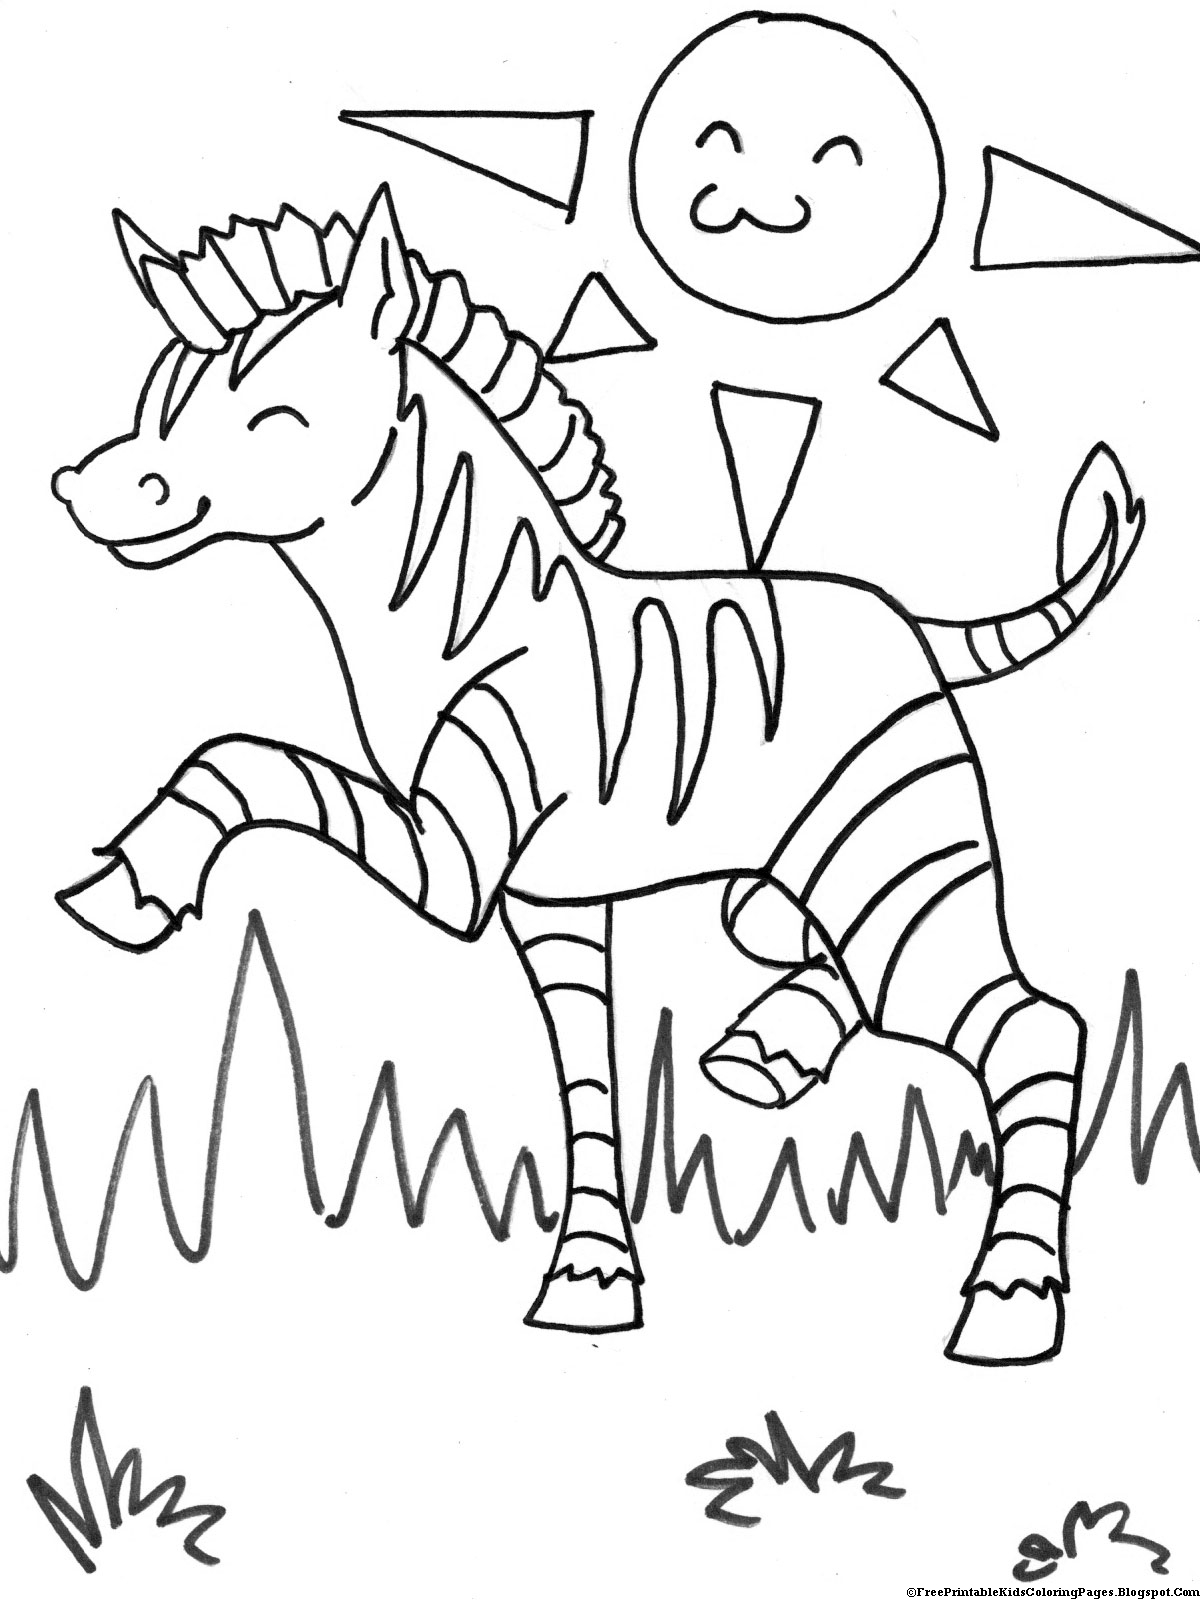 safari animal coloring pages wild animal coloring pages best coloring pages for kids coloring safari animal pages